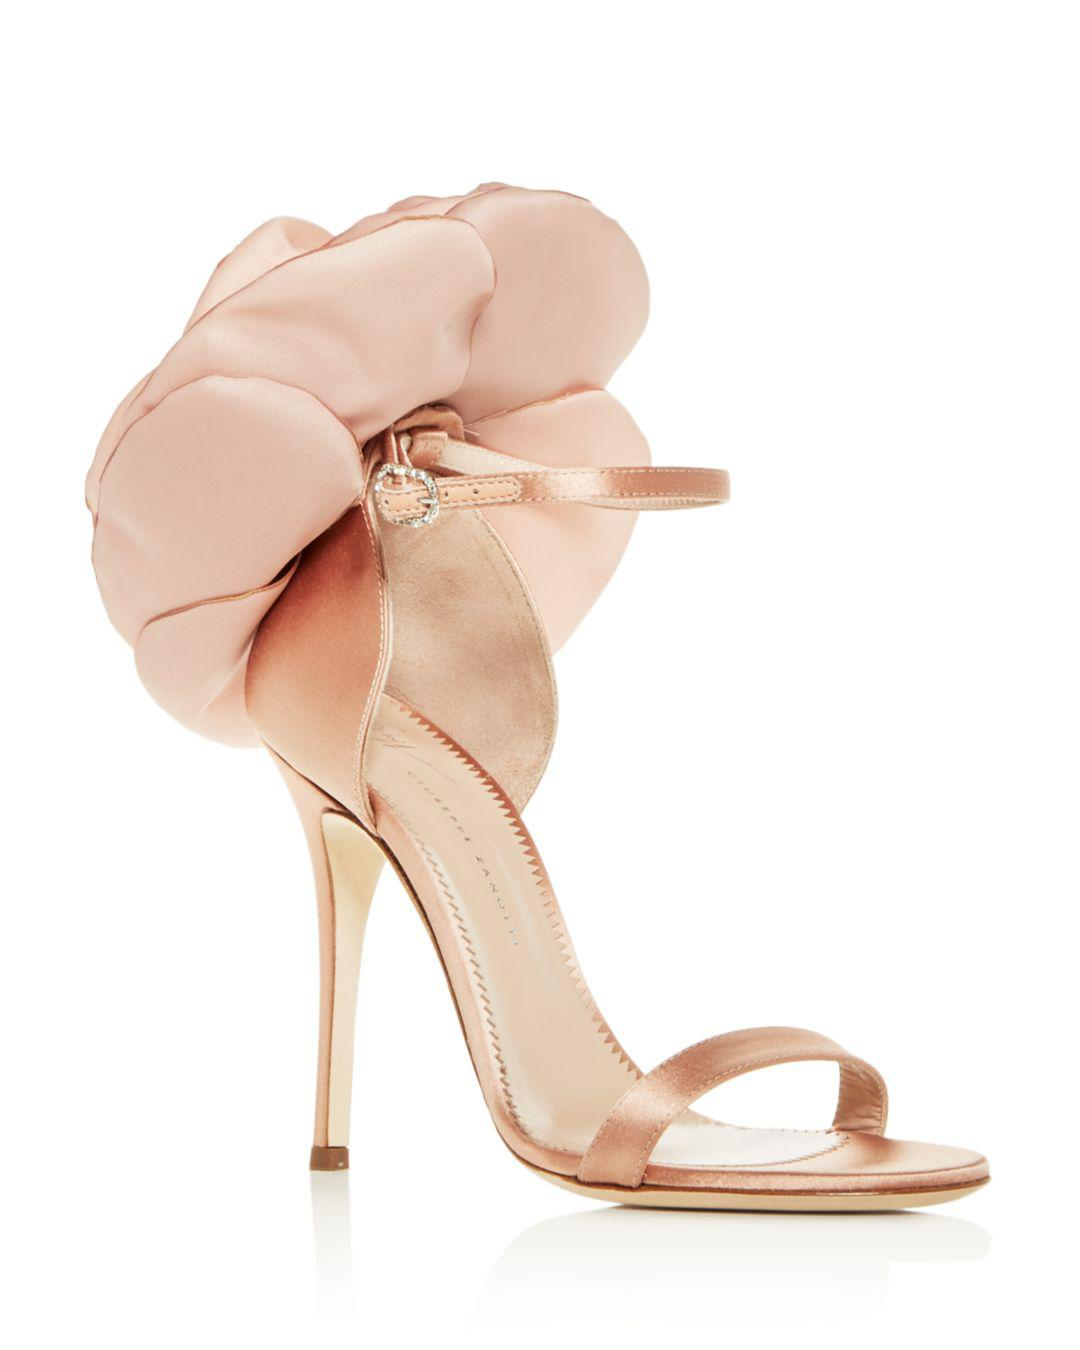 108b632317e Lyst - Giuseppe Zanotti Women s Flower-embellished High-heel Sandals